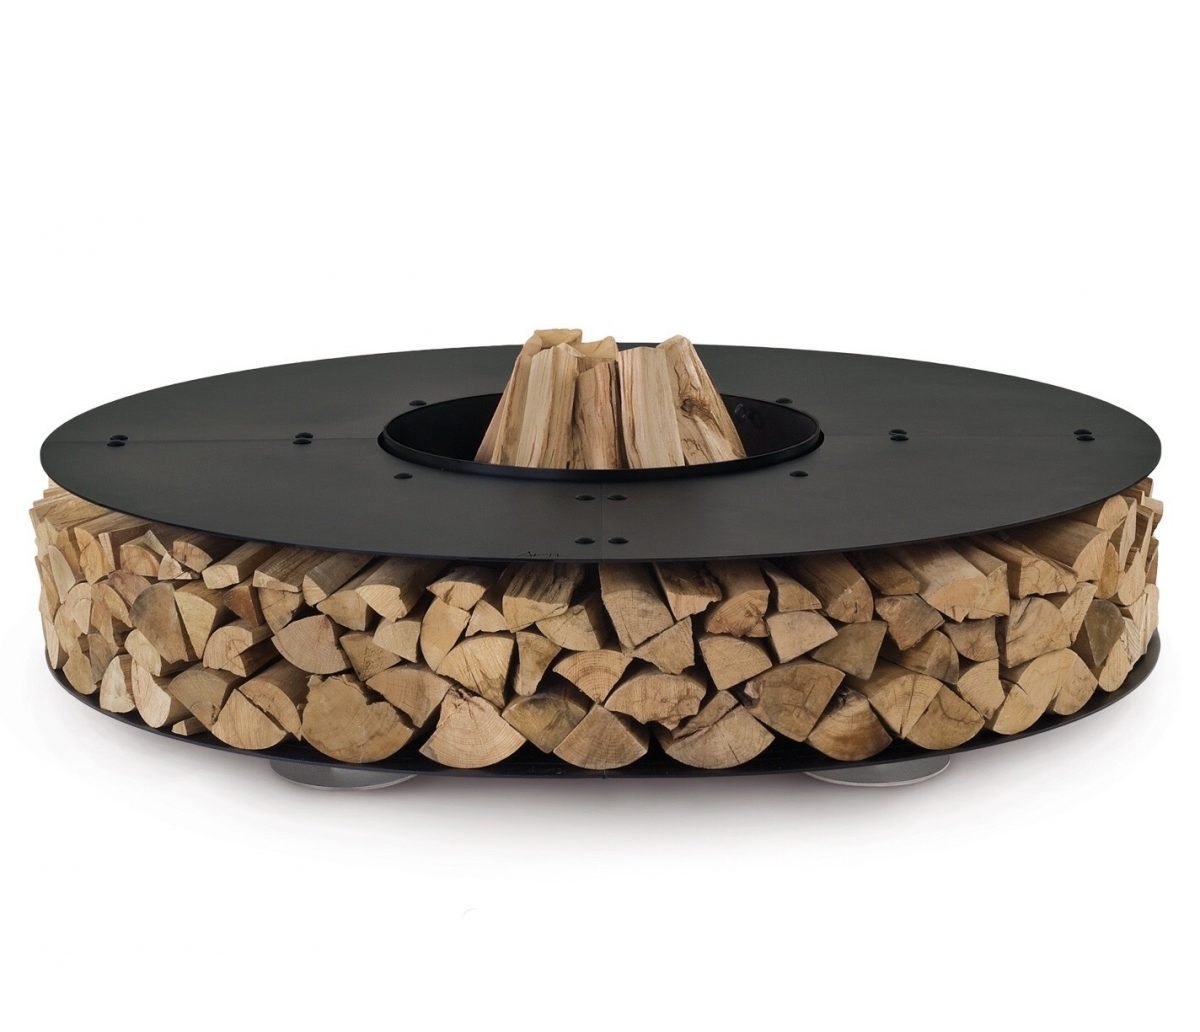 Zero Stainless Steel Fire Pit